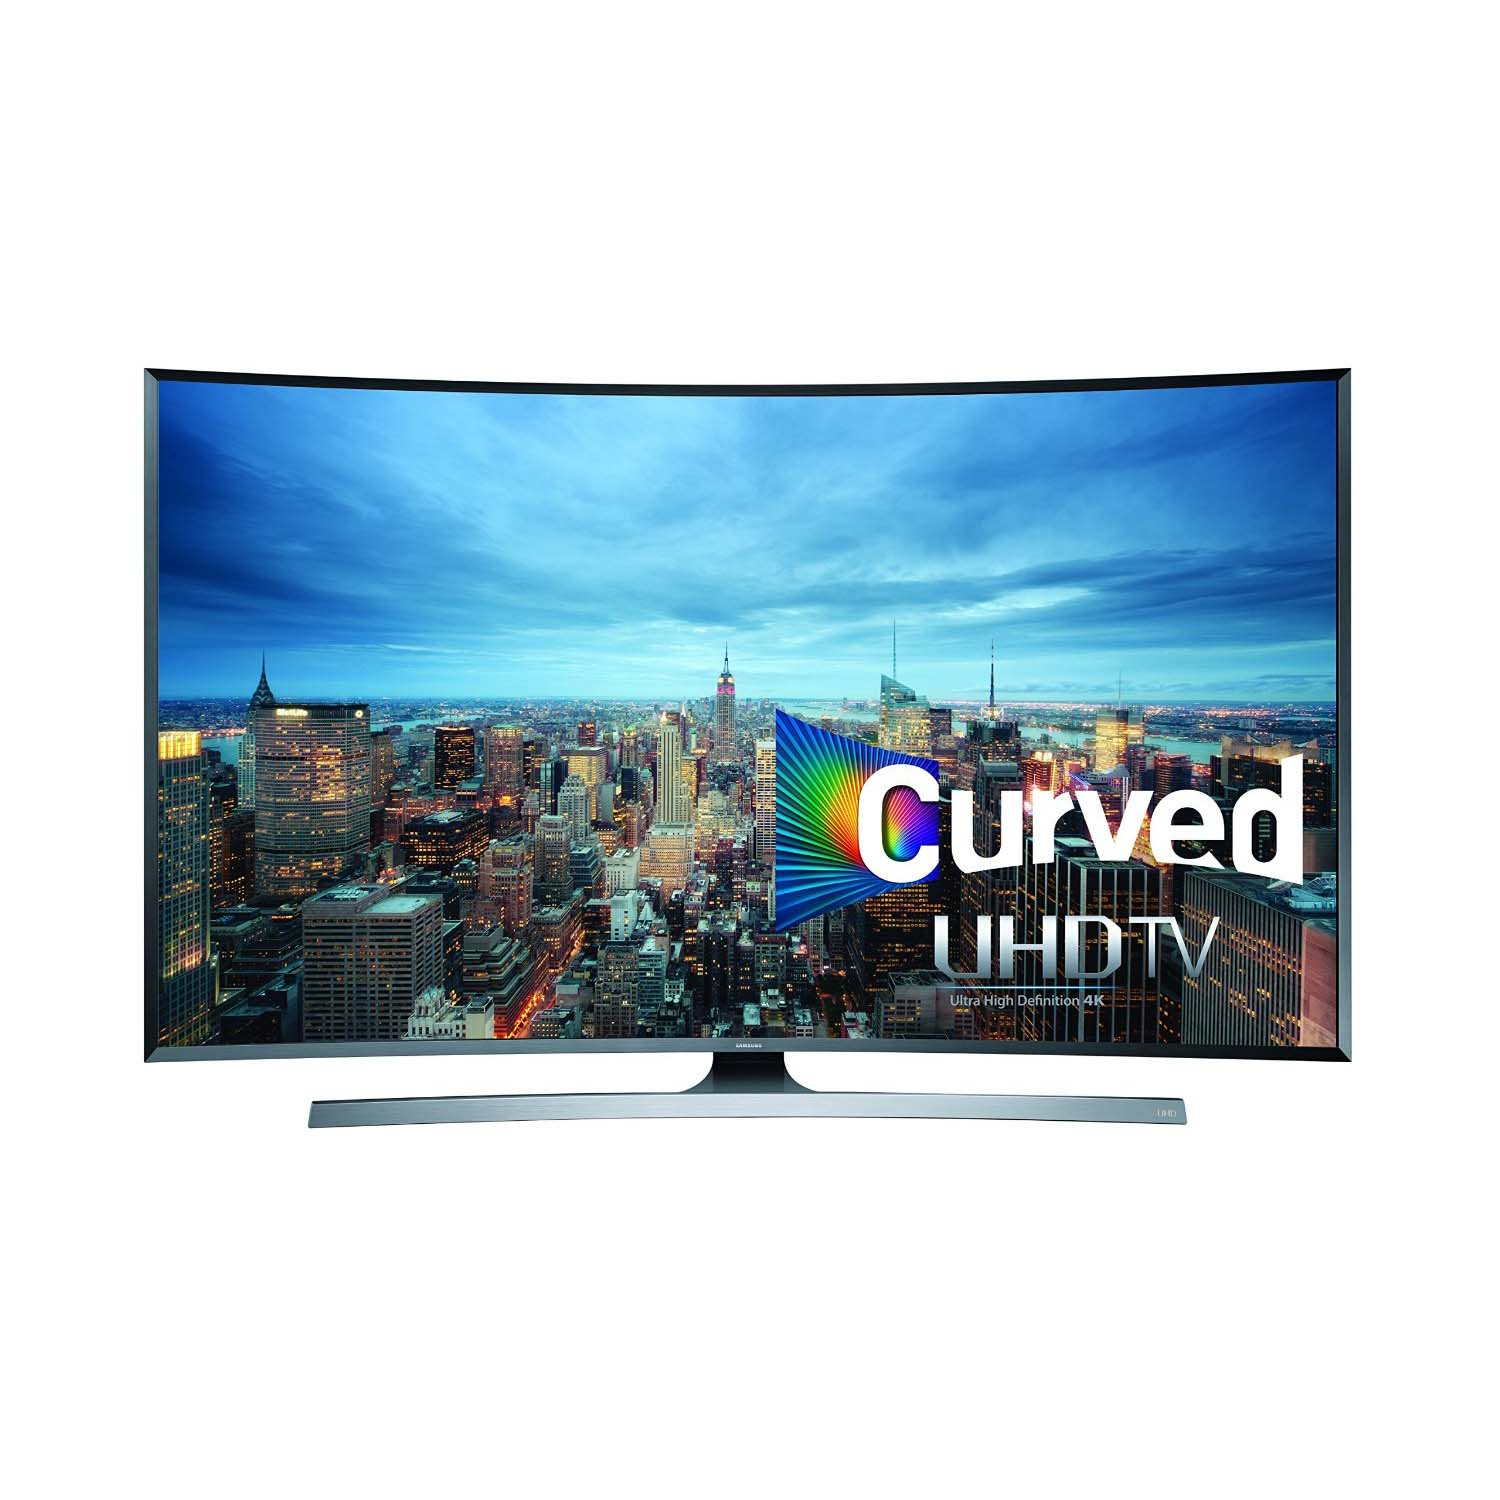 Samsung UN65JU7500 Curved 65-Inch 4K Ultra HD 3D Smart LED TV (2015 Model) *관부가세 별도*